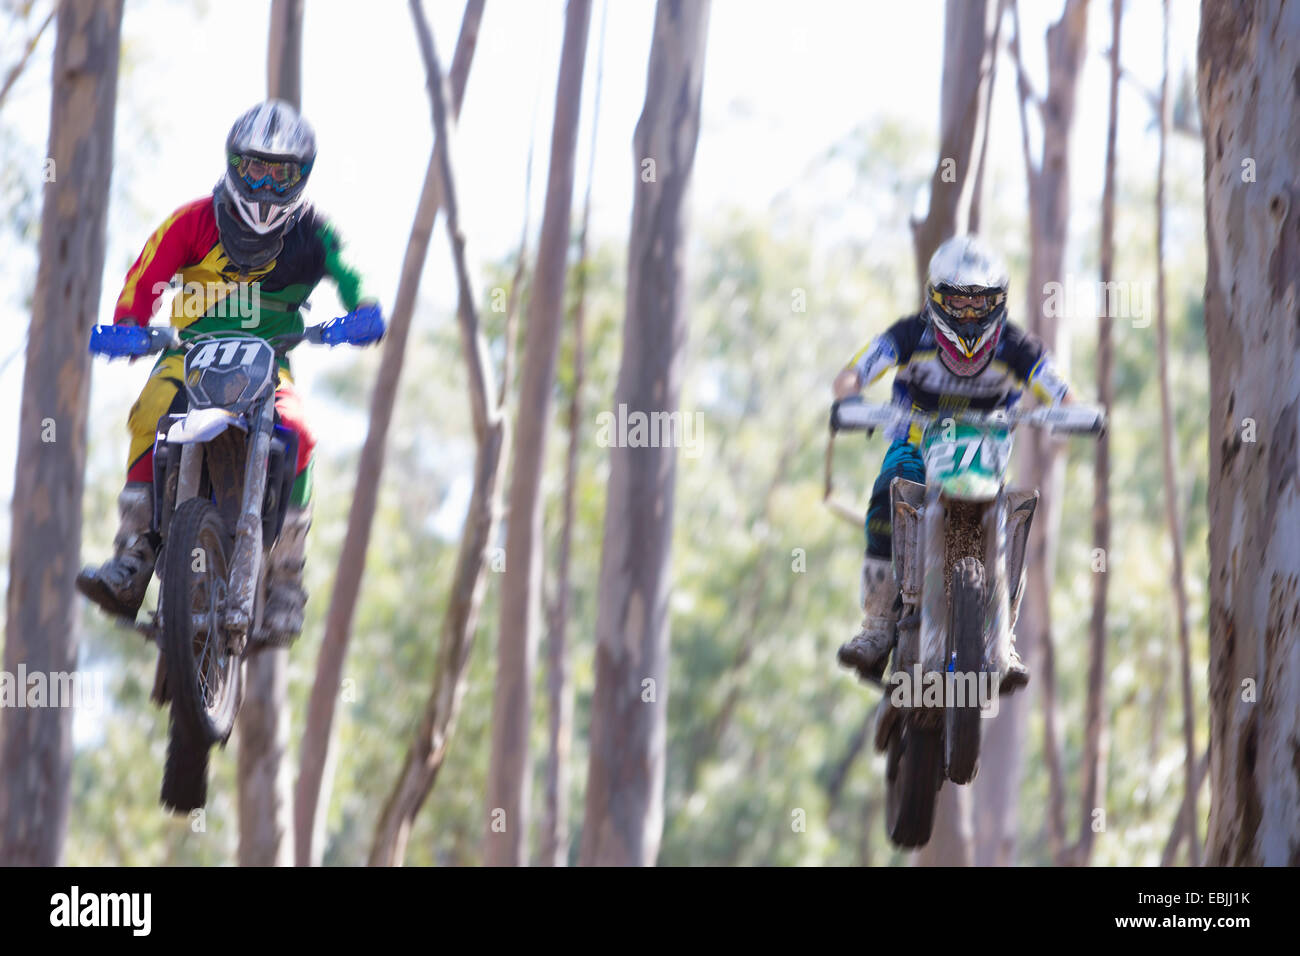 Two young male motocross riders jumping mid air through forest - Stock Image